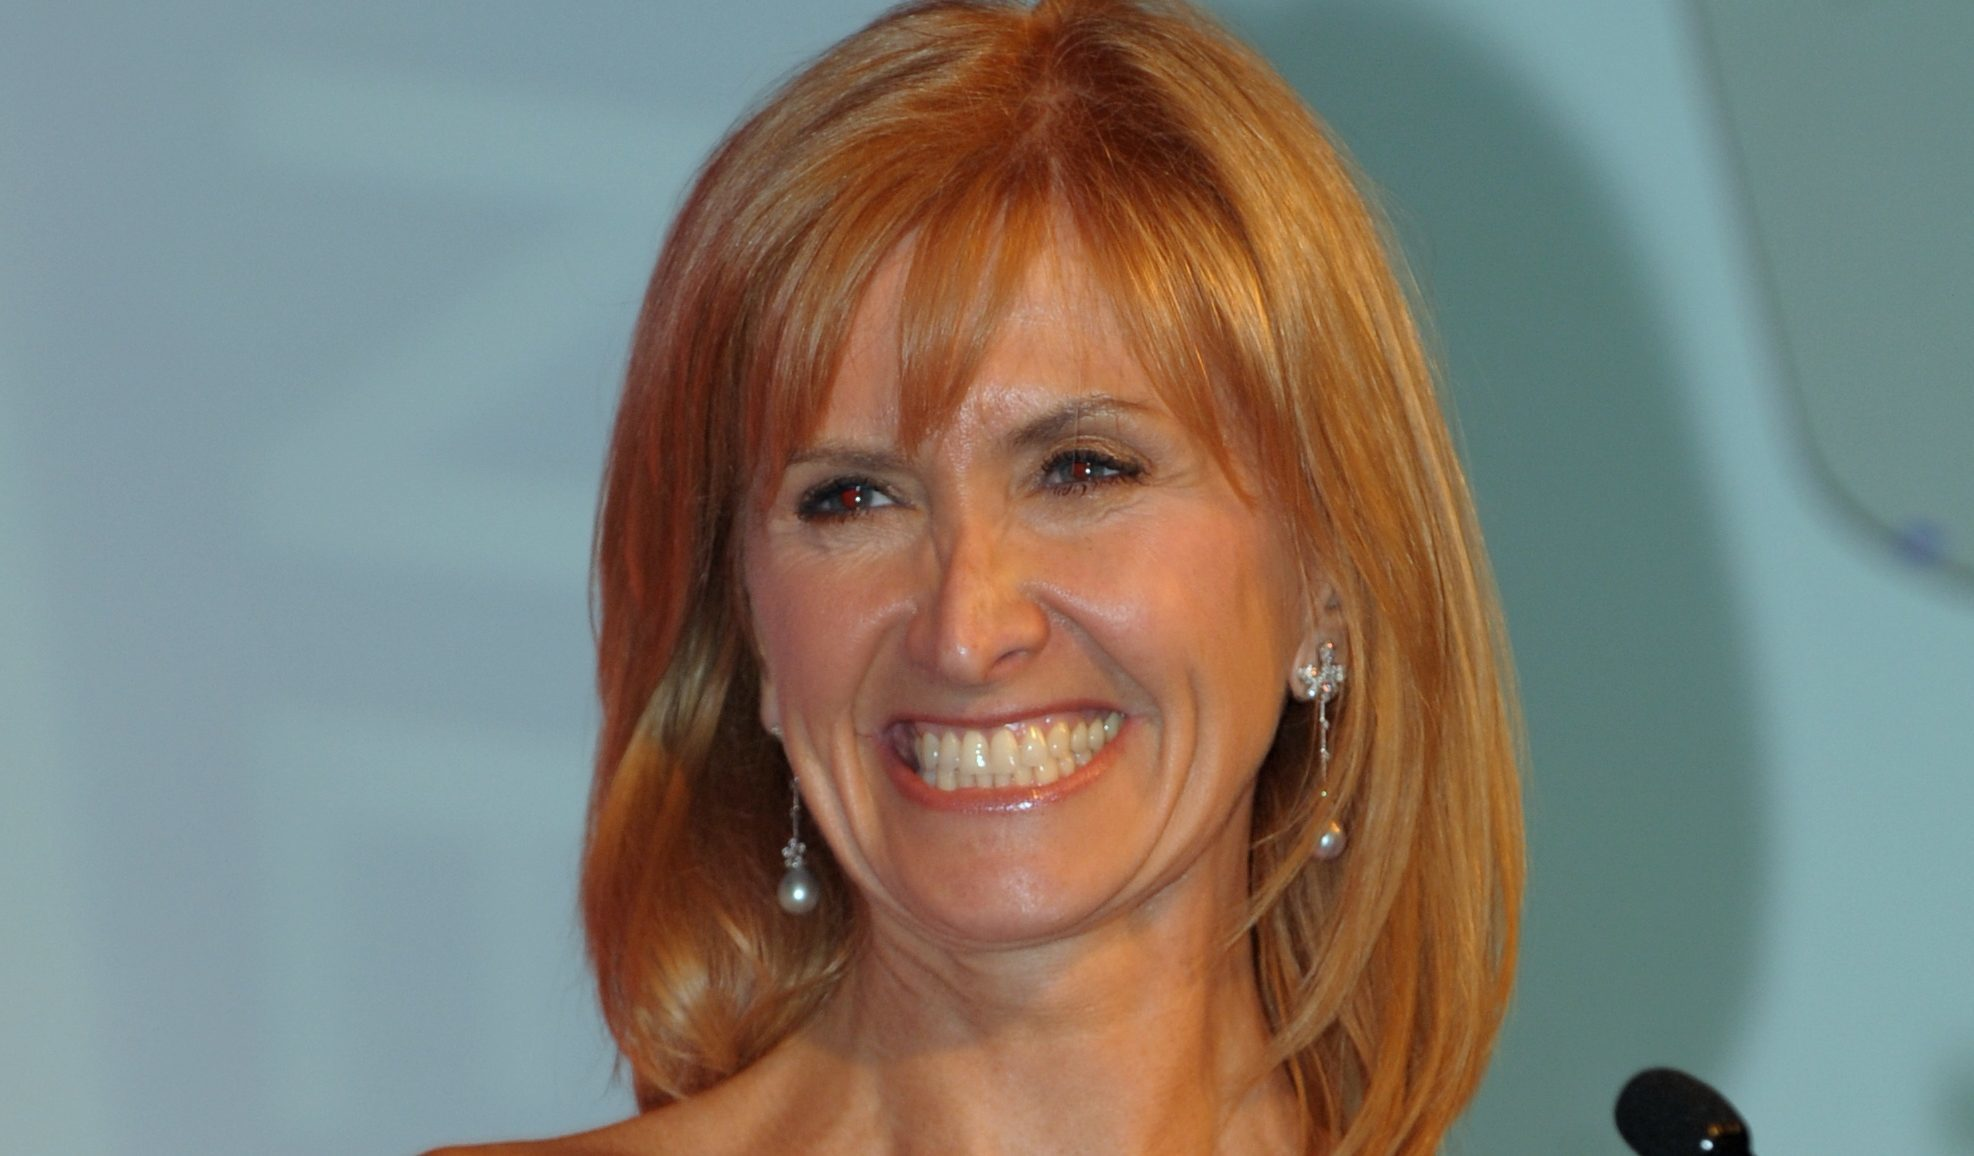 Jackie Bird is likely only to be seen on the new digital channel.